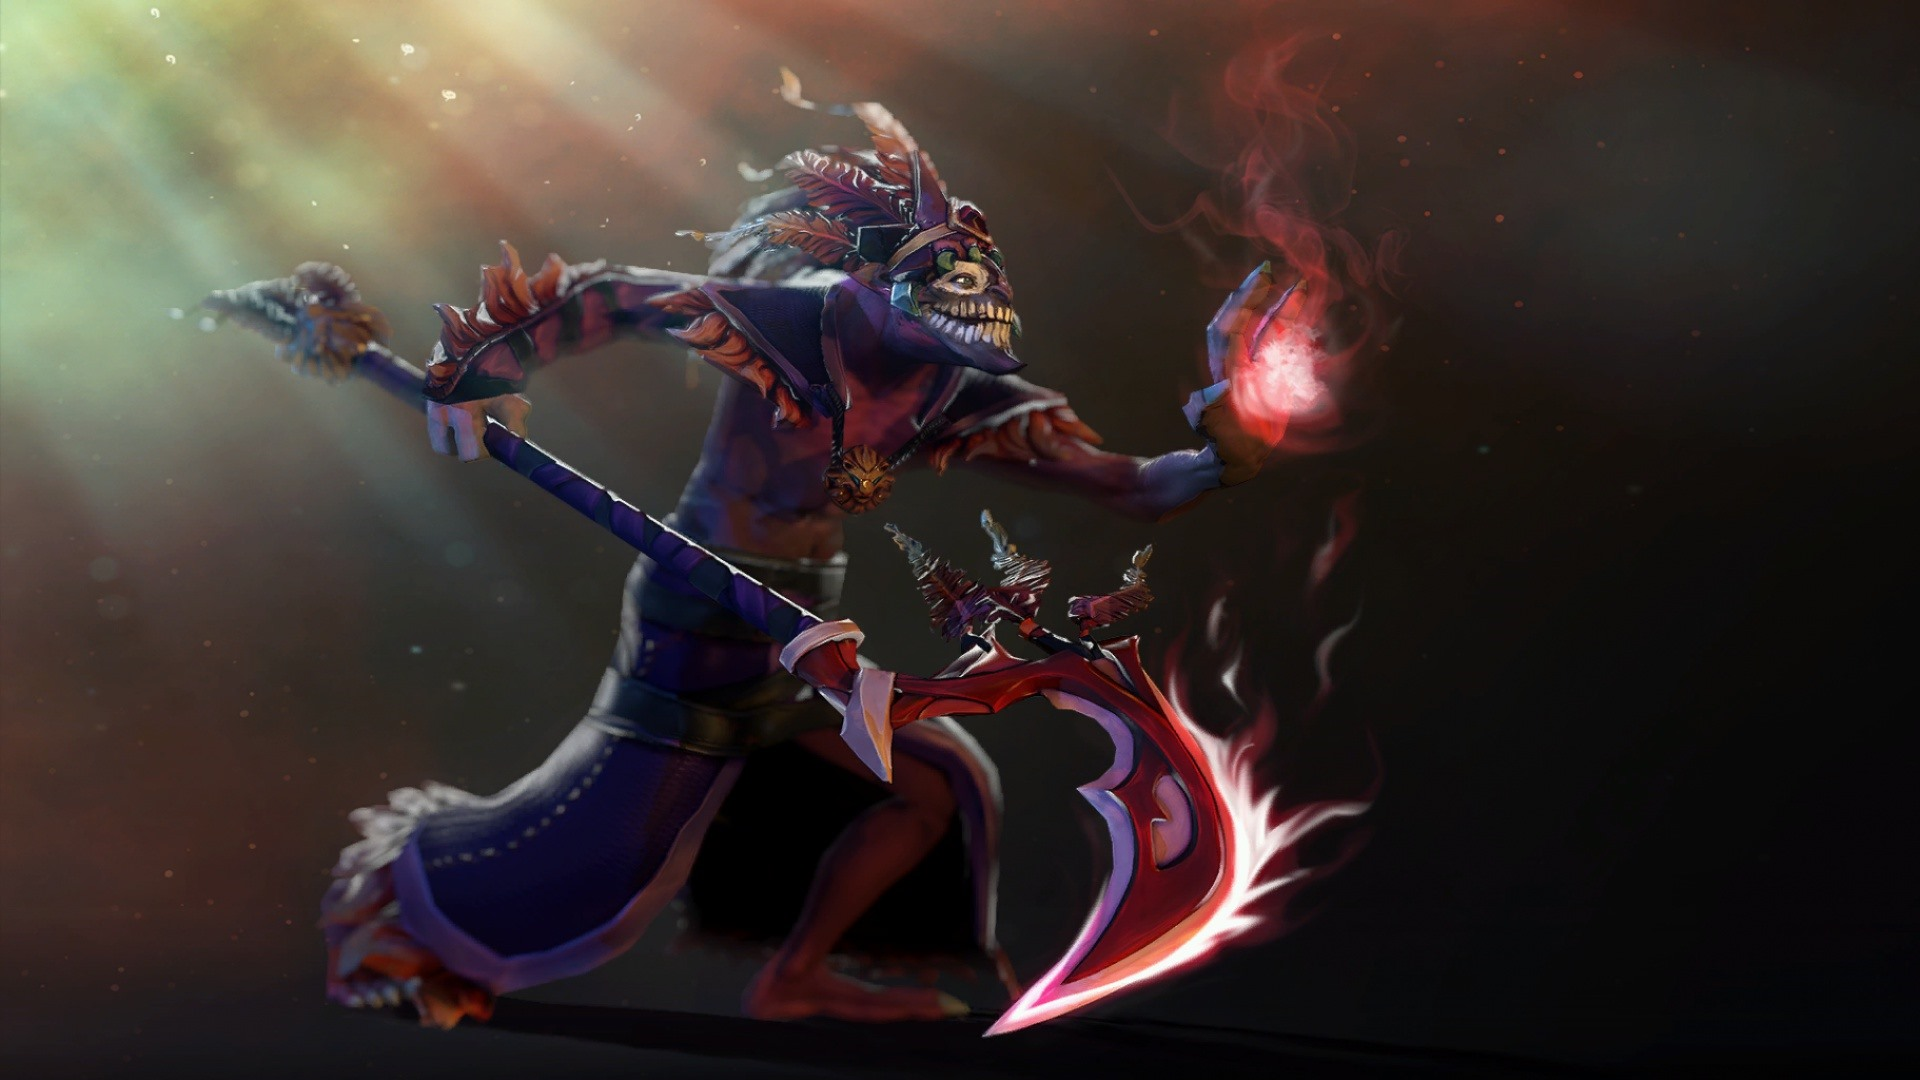 Dota 2 Priest Art Picture 640x960 IPhone 4 4S Wallpaper